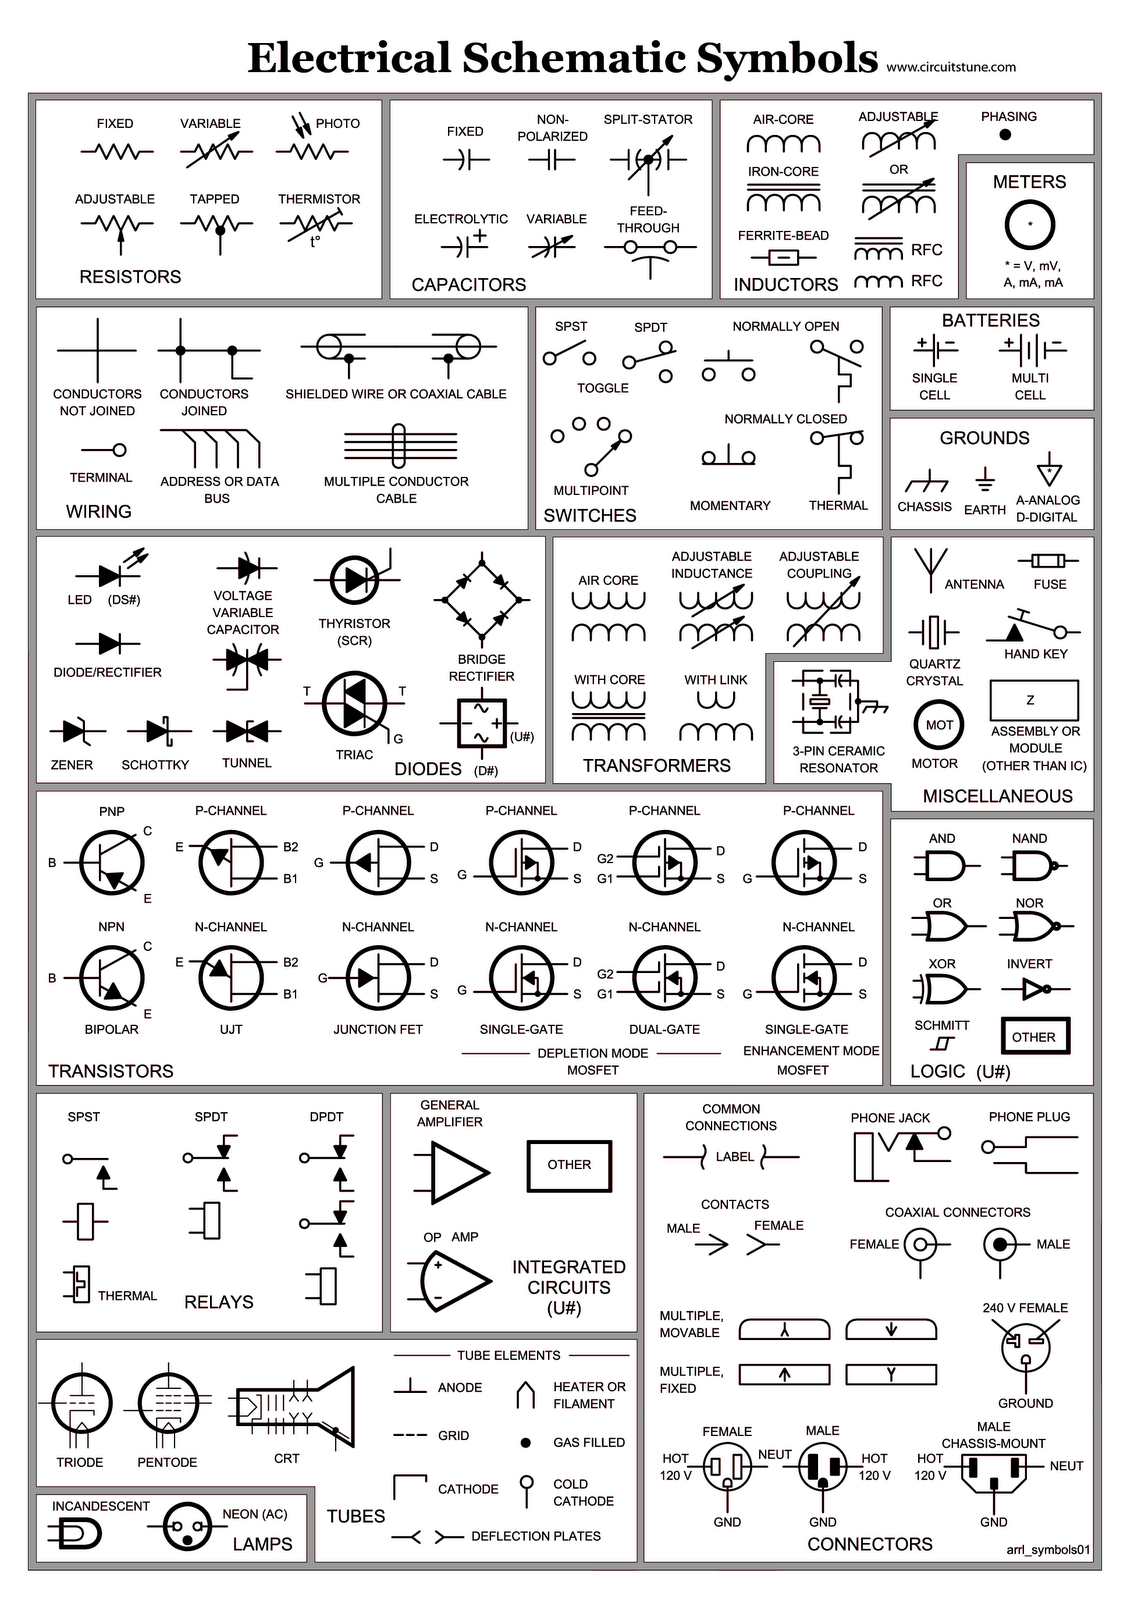 plc wiring diagram symbols Download-vJysJXCDlSA UBd T3Mjh6I AAAAAAAAAyk  tVL4J2R sOs s1600 Electrical Schematic Symbols. DOWNLOAD. Wiring Diagram ...